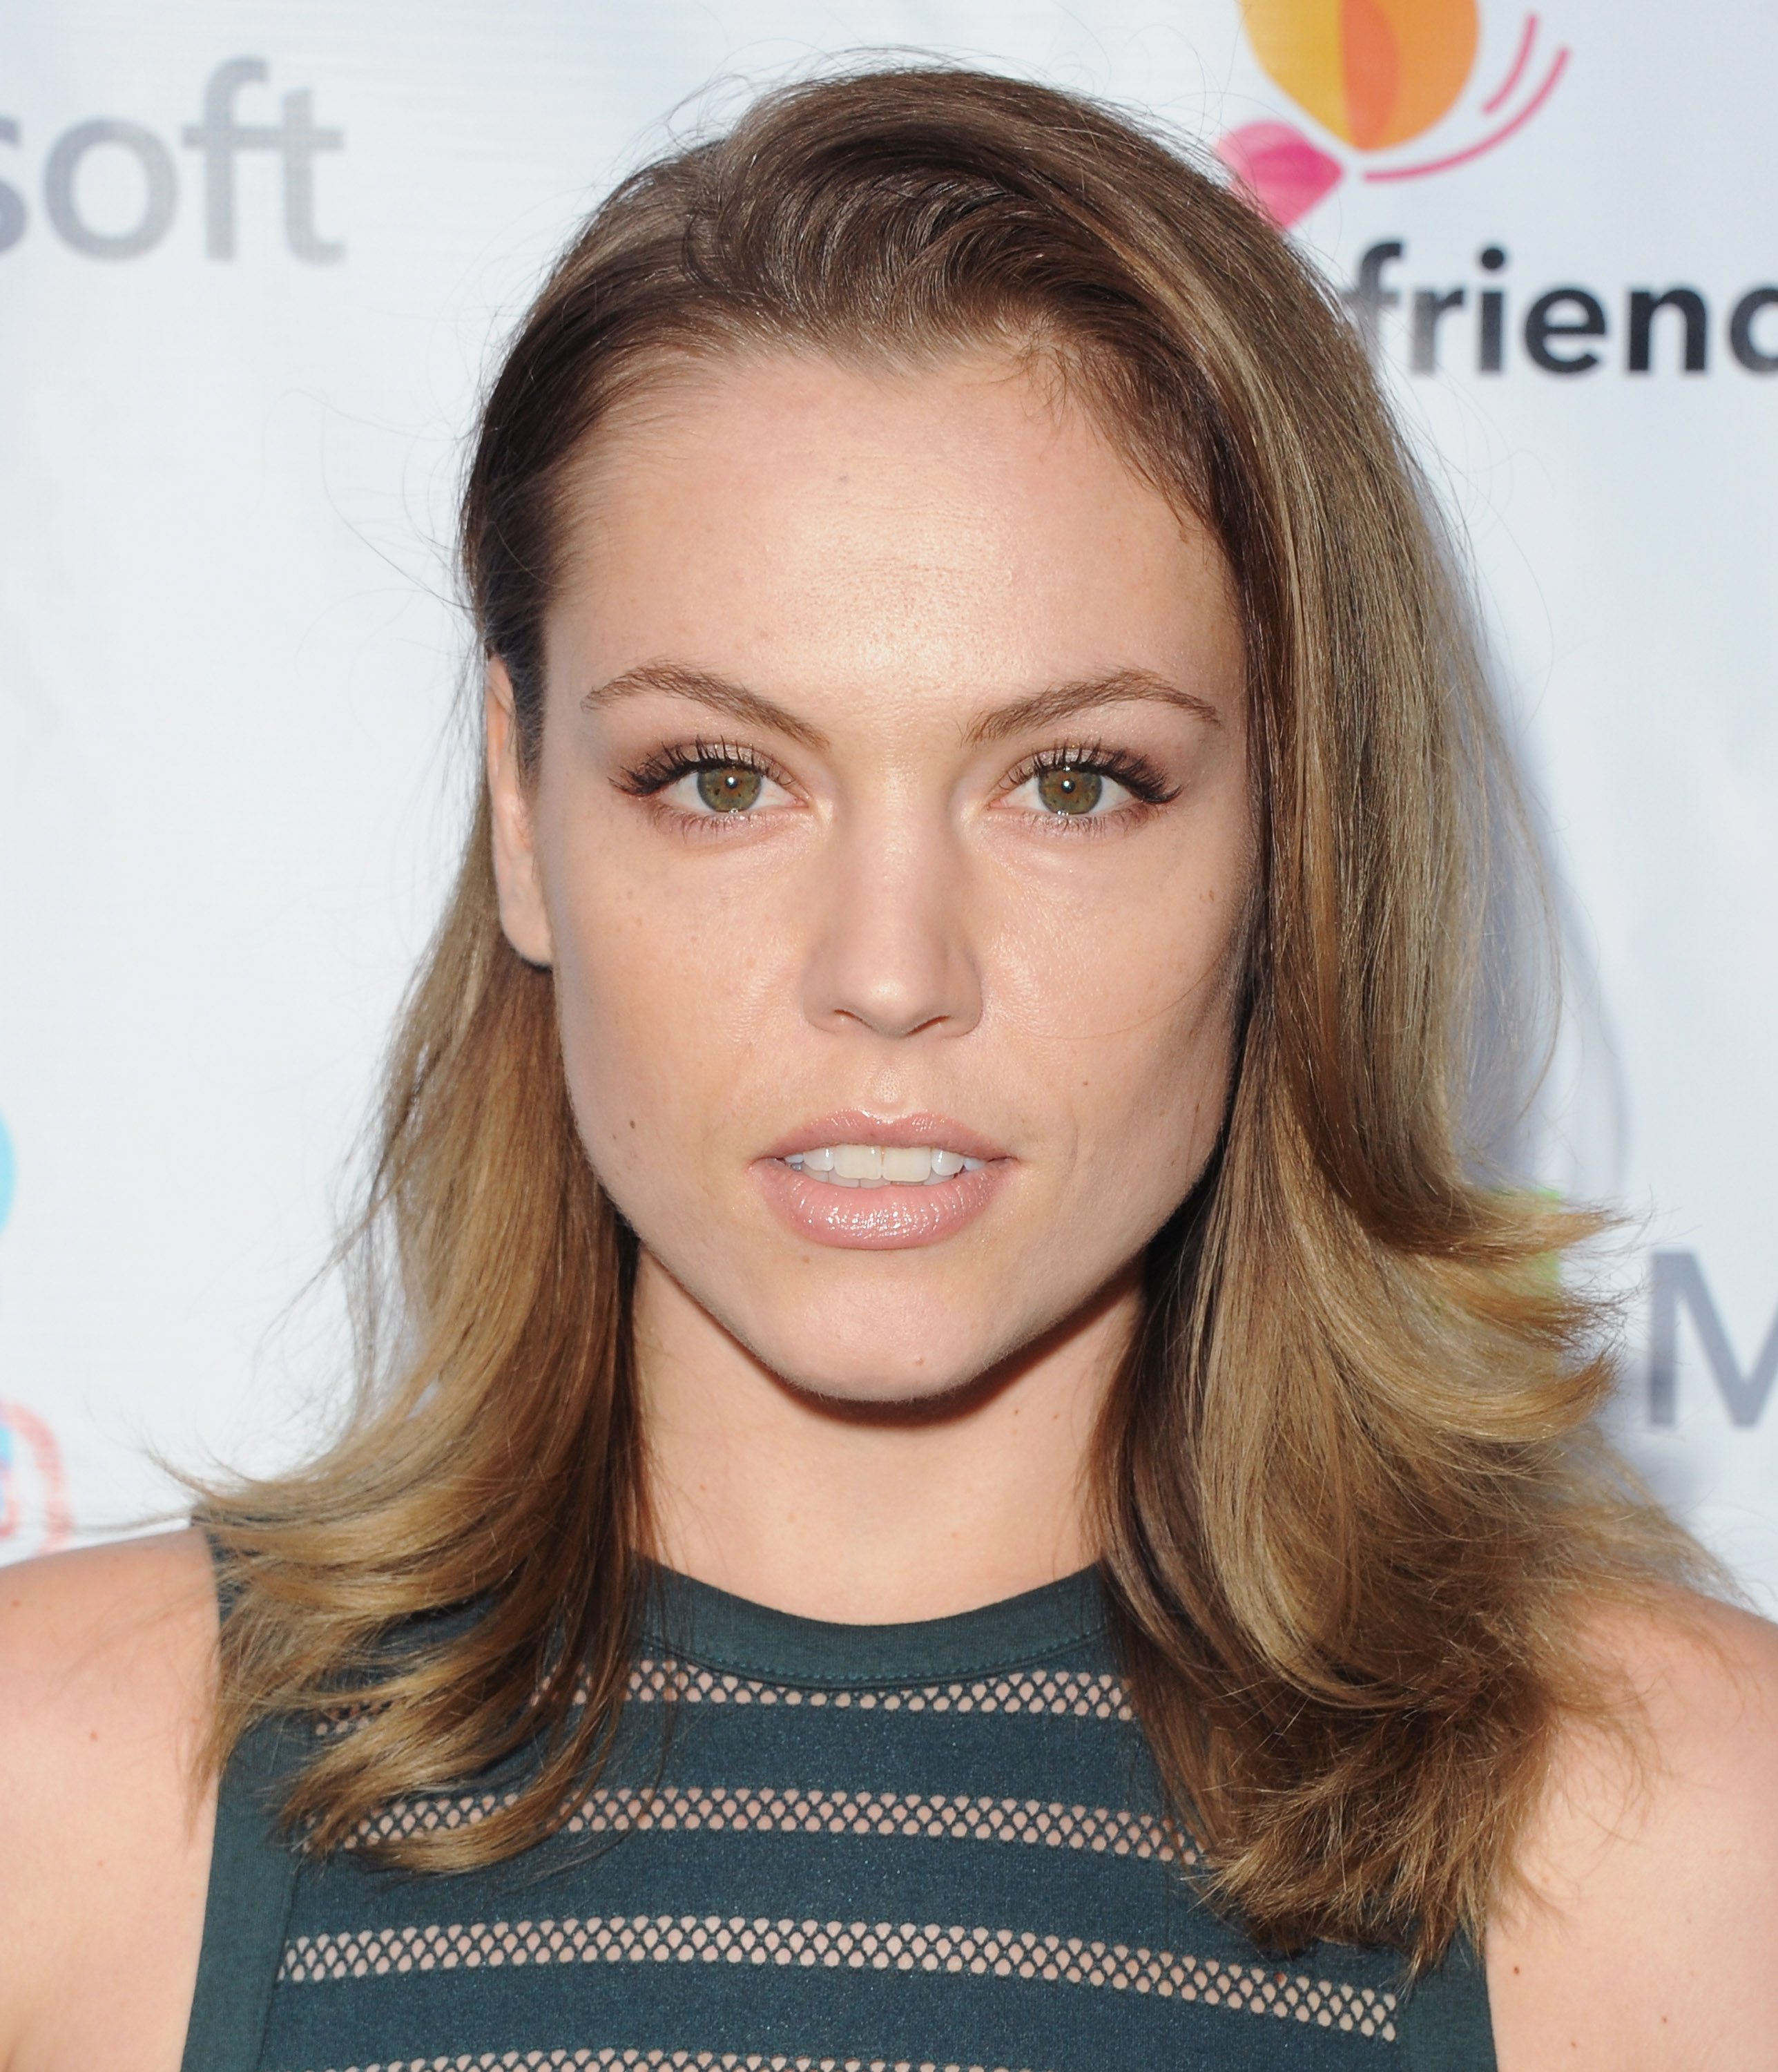 Agnes bruckner wallpapers high quality download free